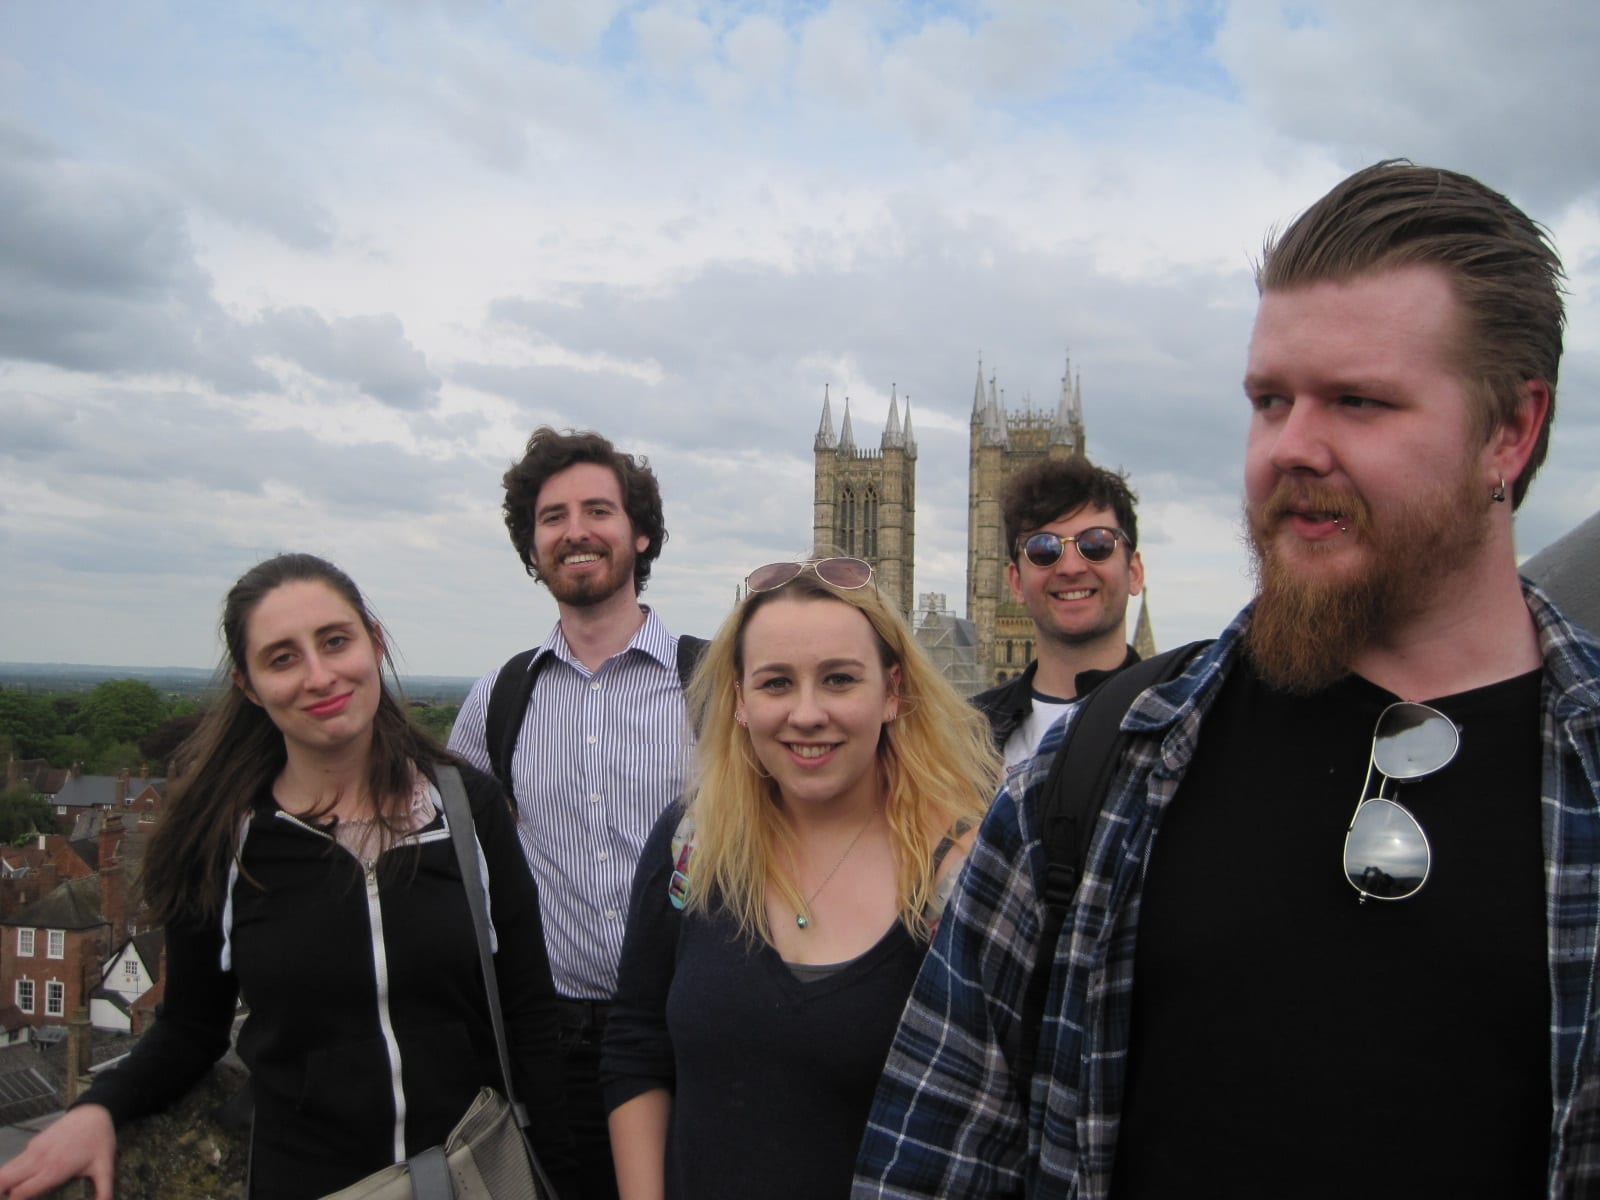 Our students had time for a quick photo on the Observatory Tower, with Lincoln Cathedral in the background! Left to right: Lisa, Trenton, Jeni, Alex and Sam.